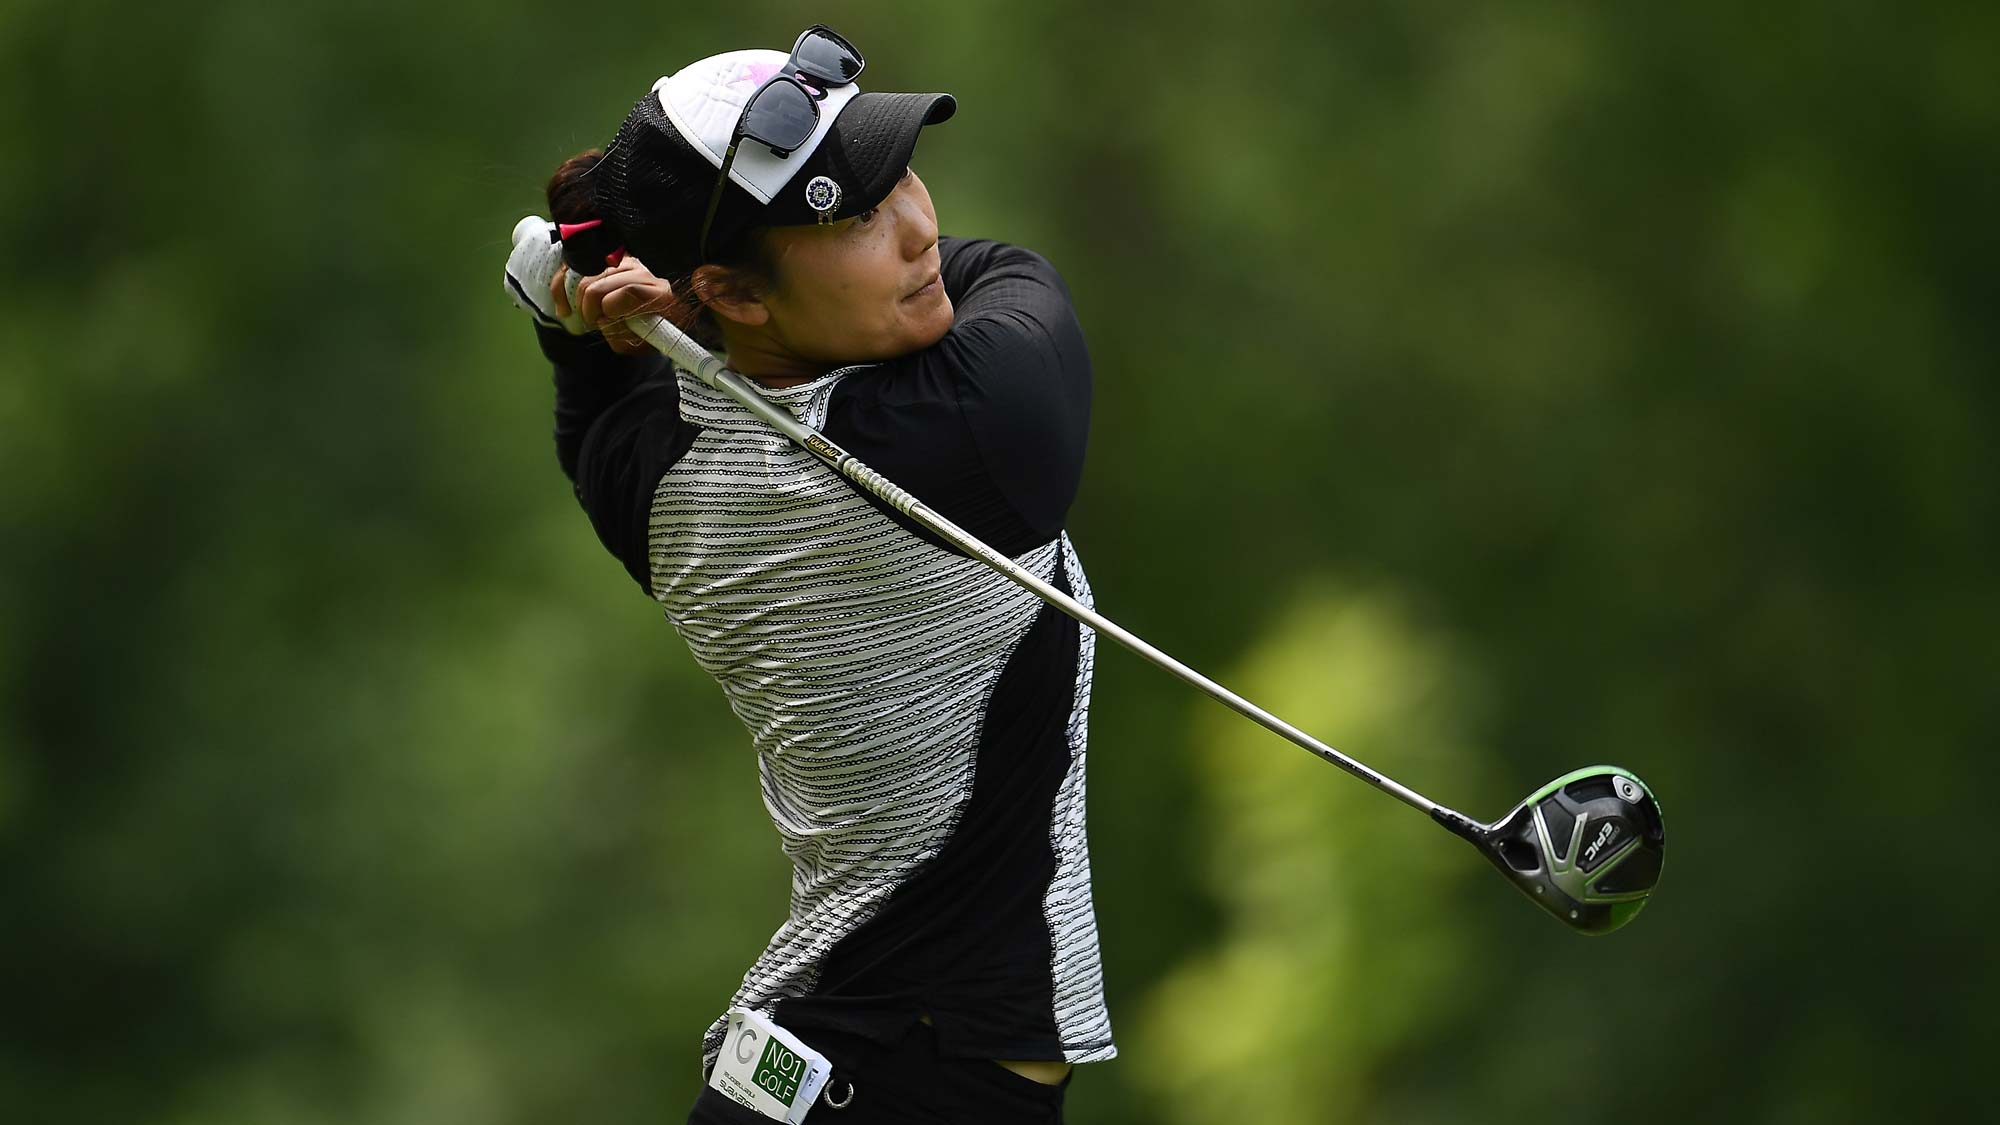 Tiffany Joh hits her tee shot on the third hole during the final round of the Thornberry Creek LPGA Classic